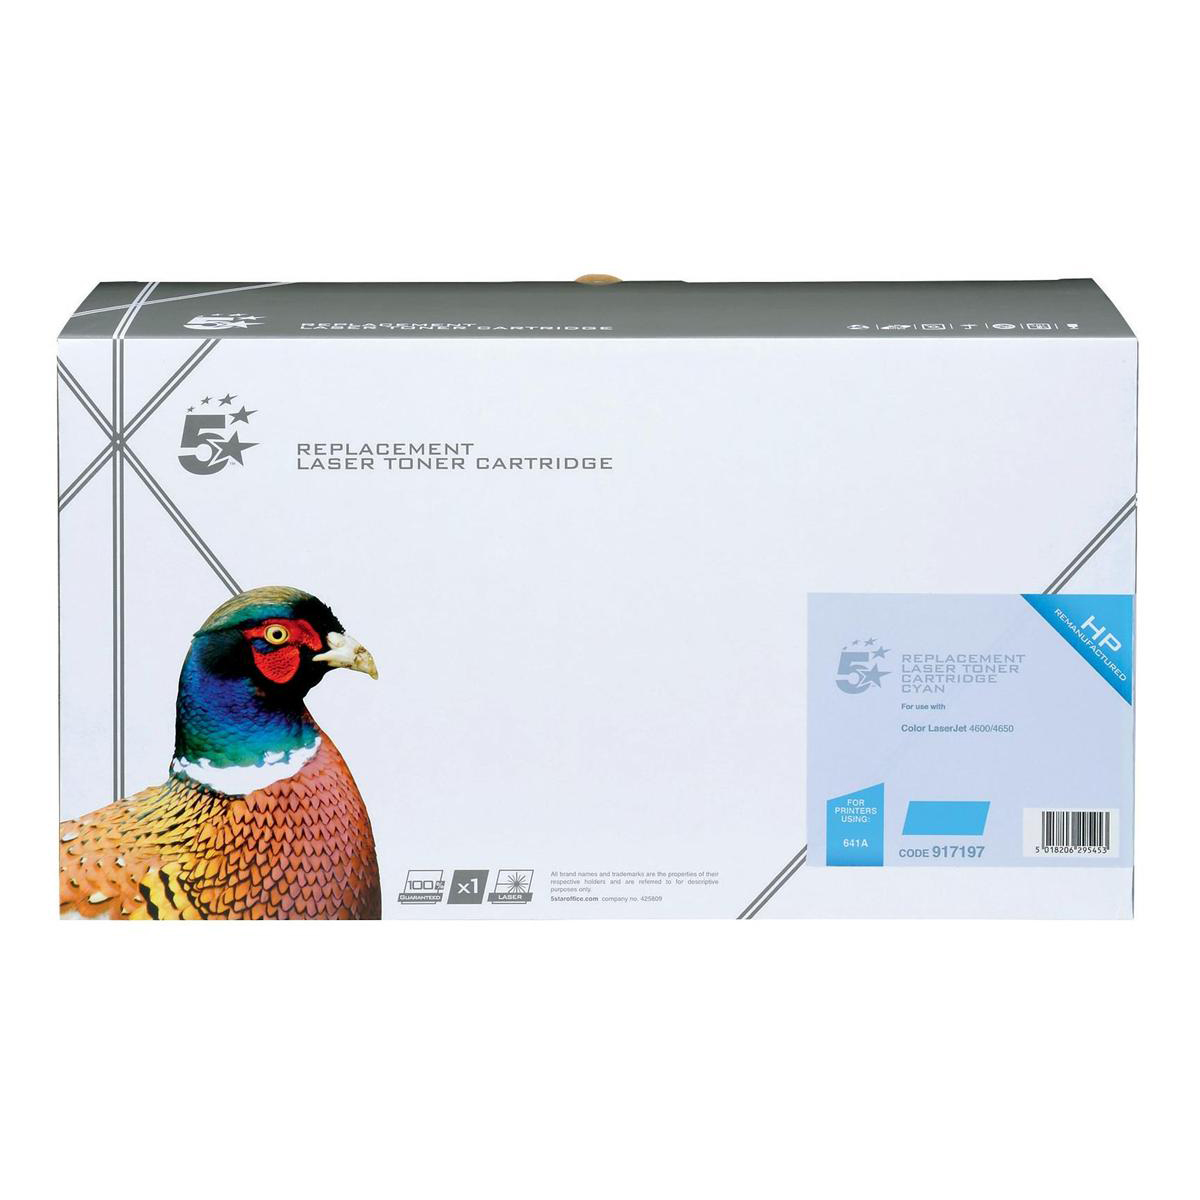 5 Star Office Remanufactured Laser Toner Cartridge Page Life 8000pp Cyan [HP 641A C9721A Alternative]